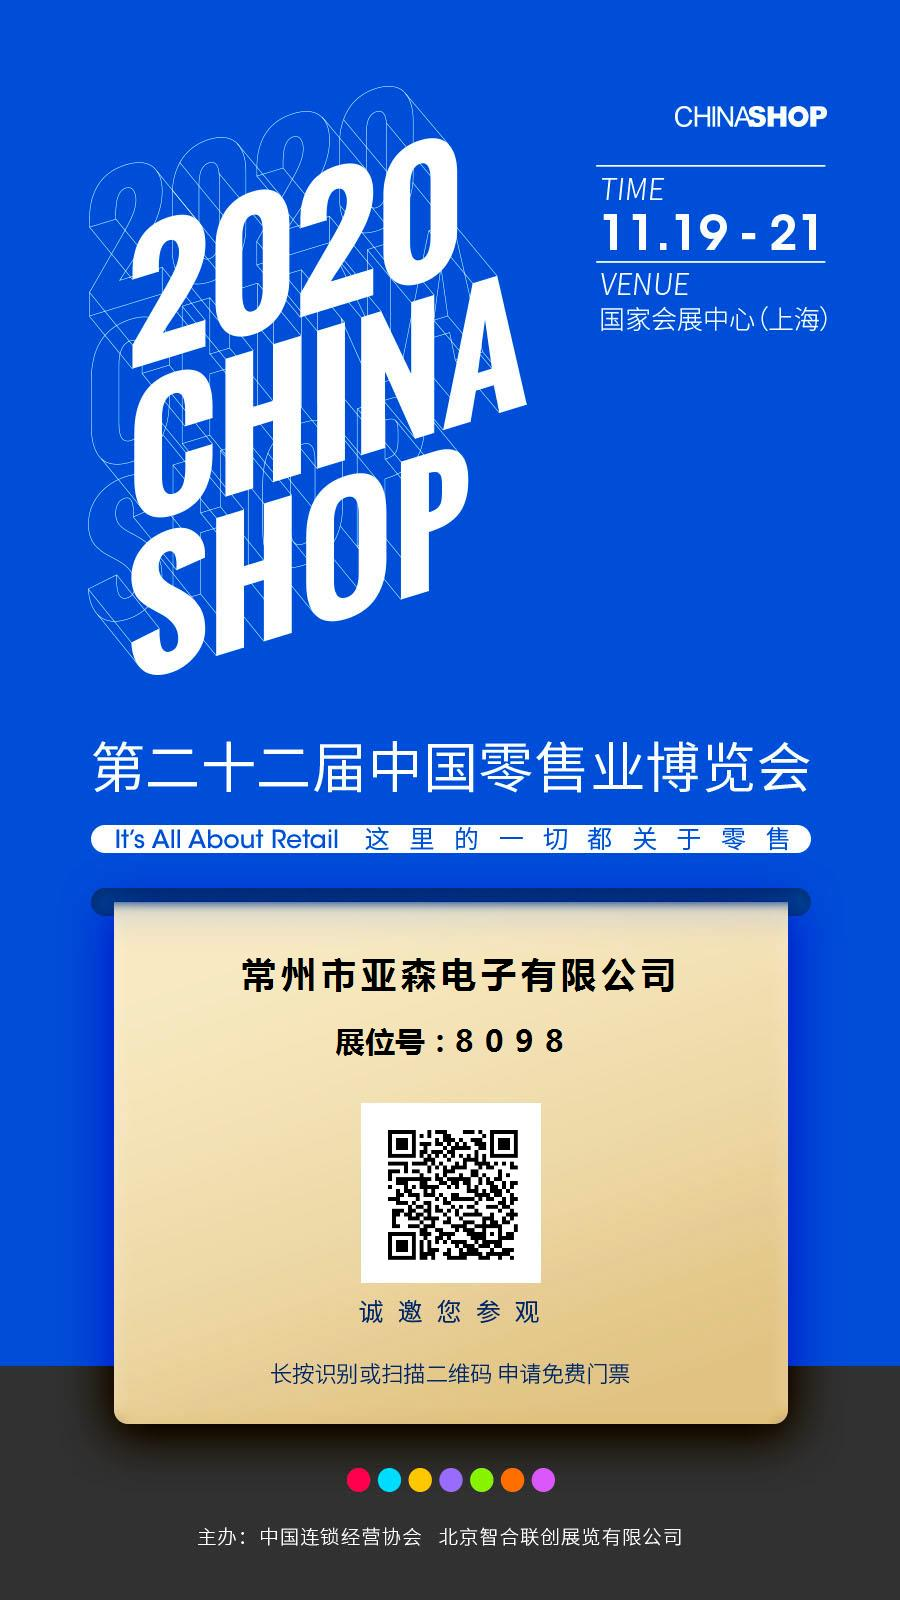 Welcome to China shop  DURING Nov.19-21 OF 2020, OUR COMPANY PARTICIPATES IN 2020Shanghai China shop